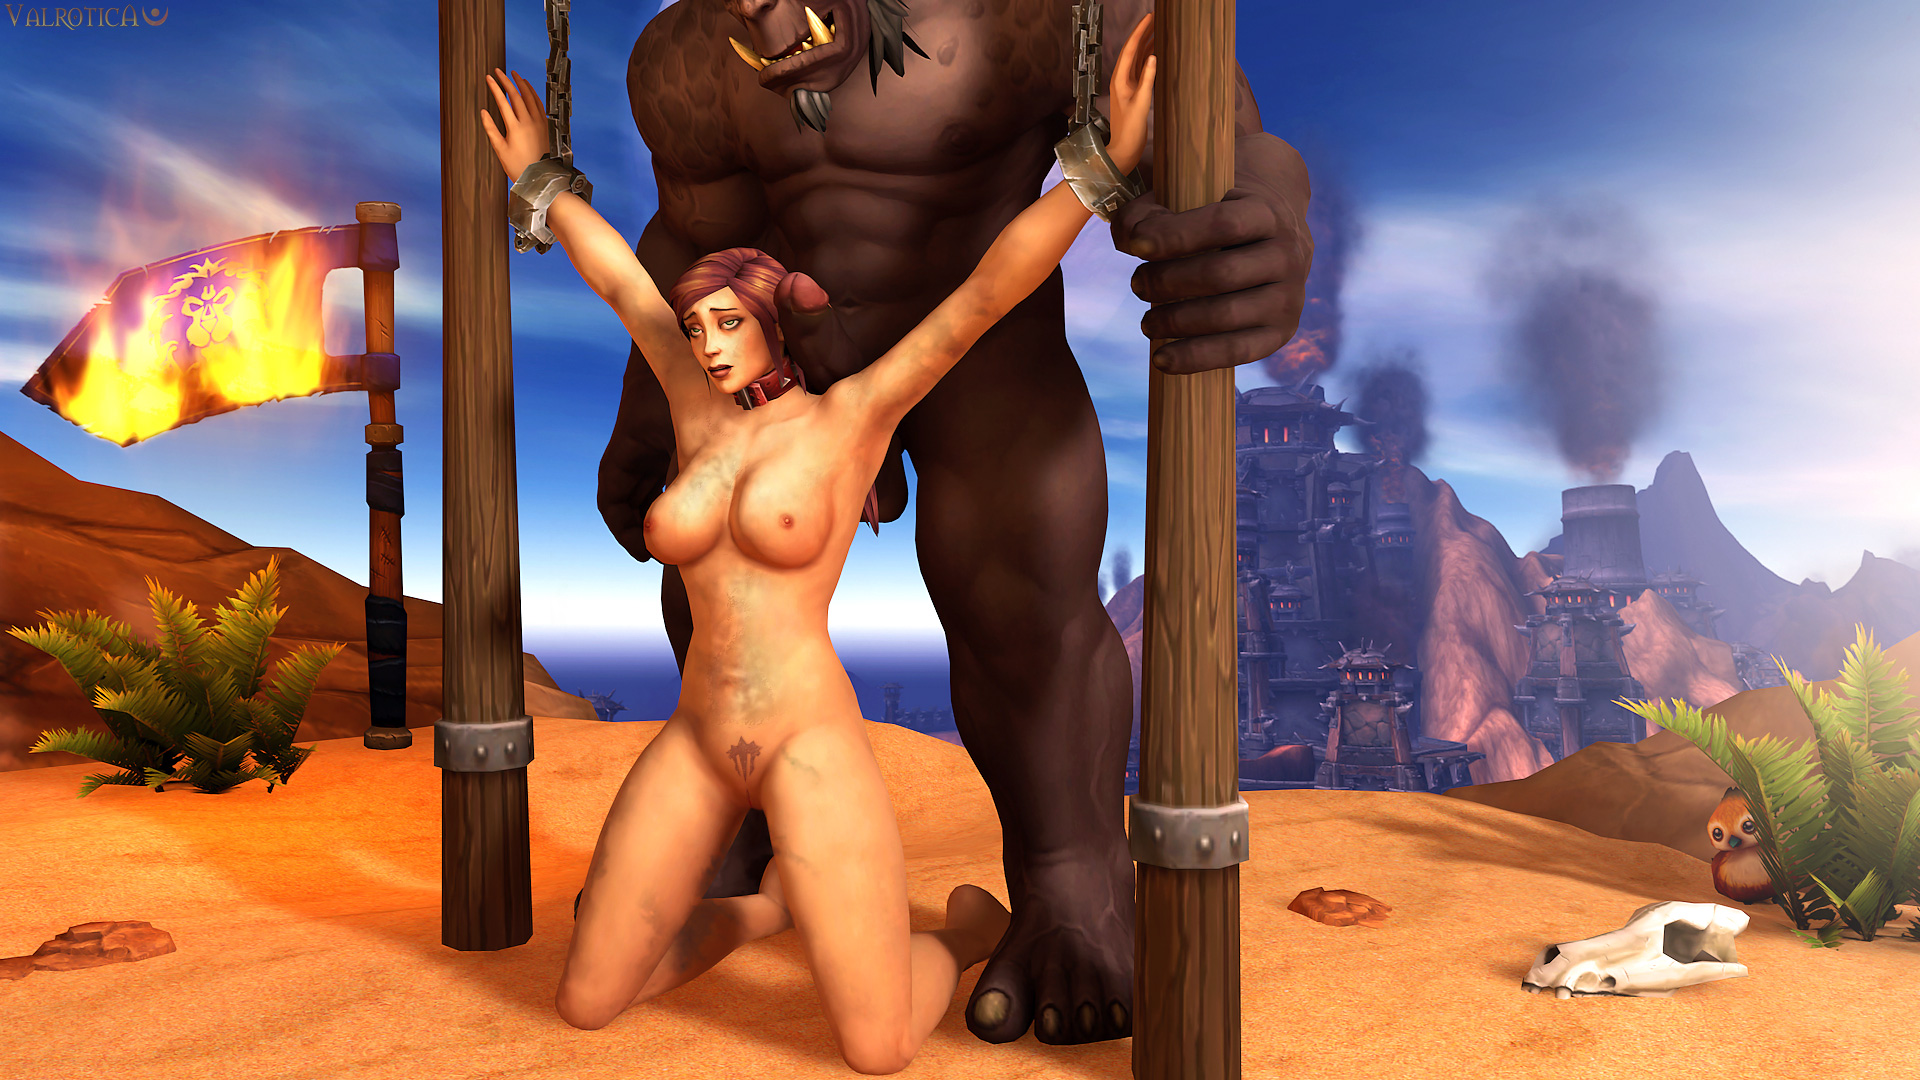 World of warcraft sexy screenshots adult pics